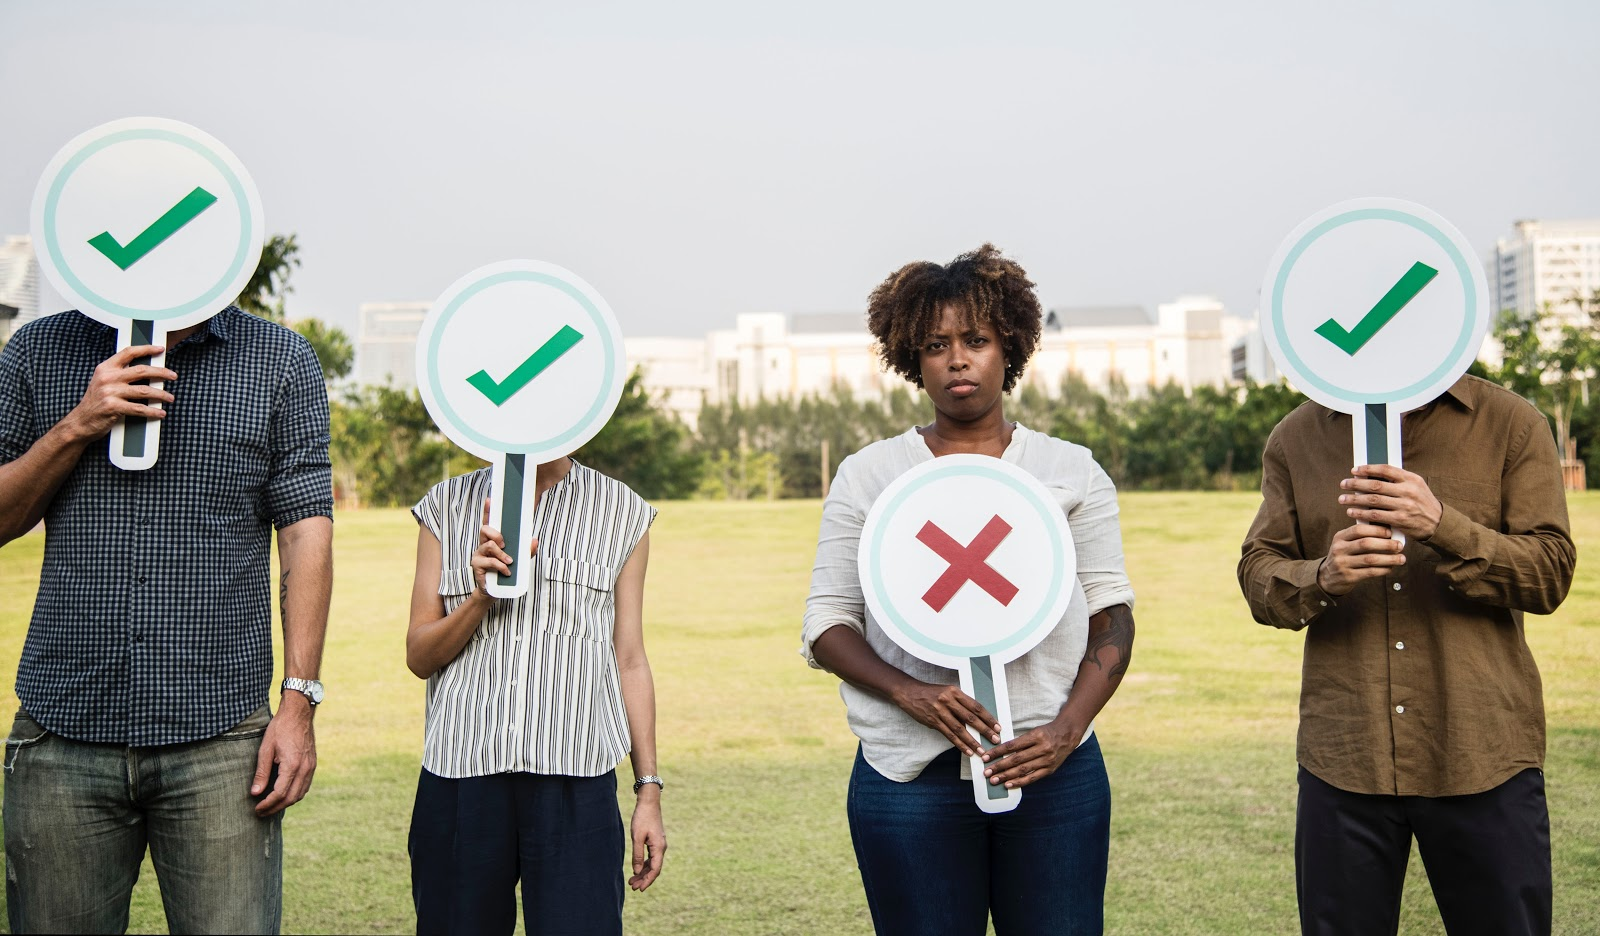 4 people holding up signs. The first two have a sign with a tick covering their face. The third has a sign with an X showing her face. The last with a tick sign covering their face.